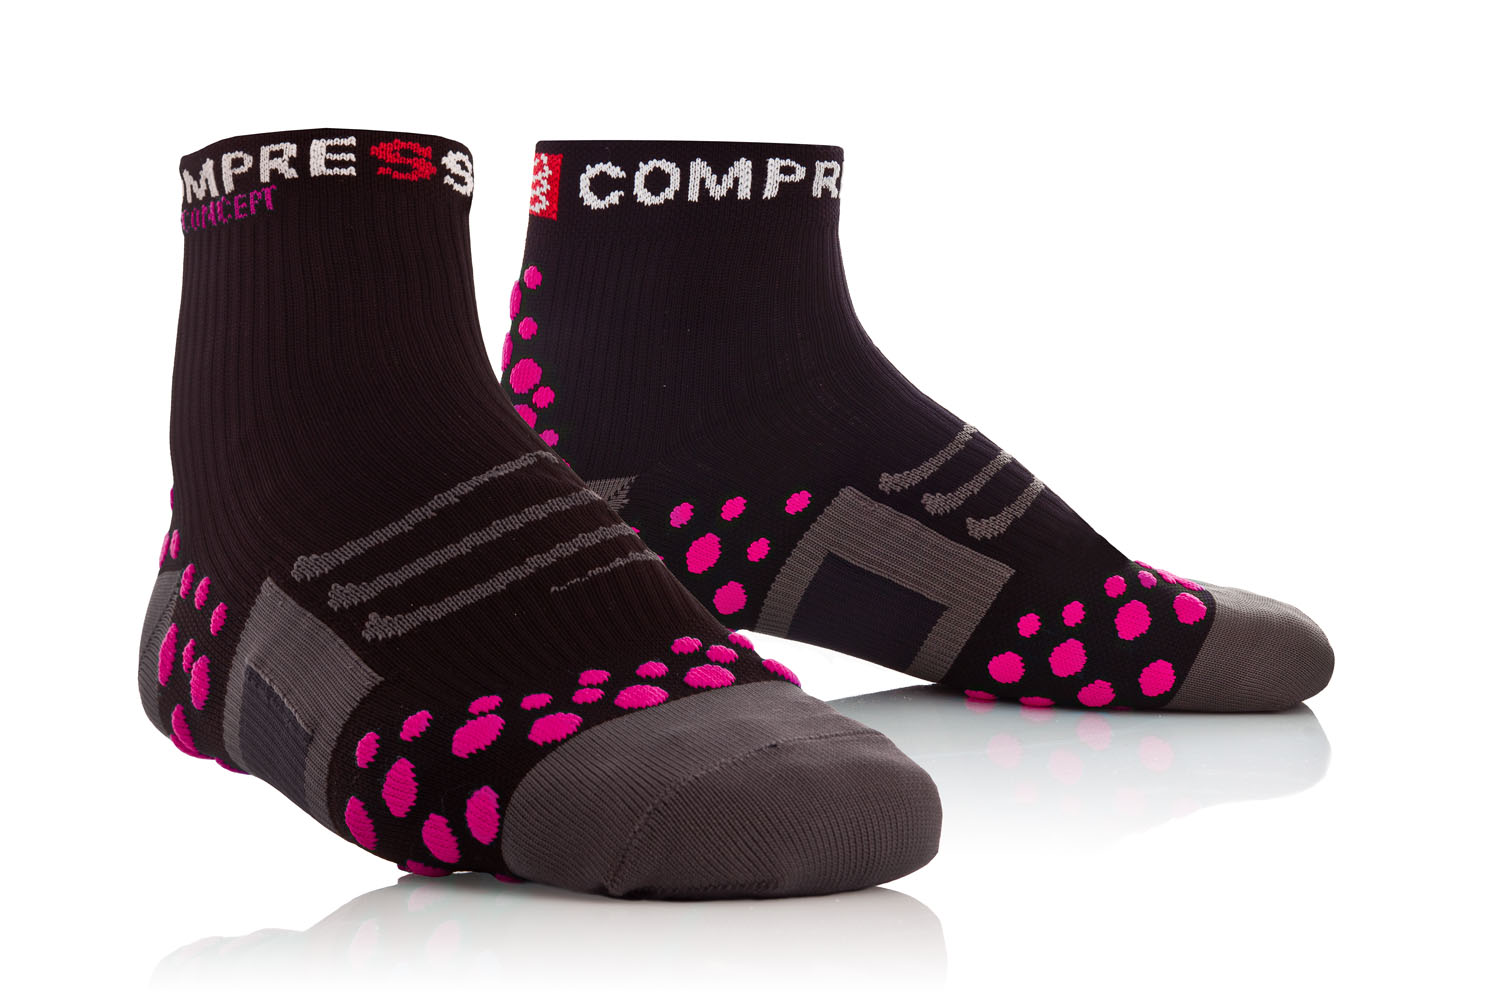 Run high Pink-Black pair-72Dpi